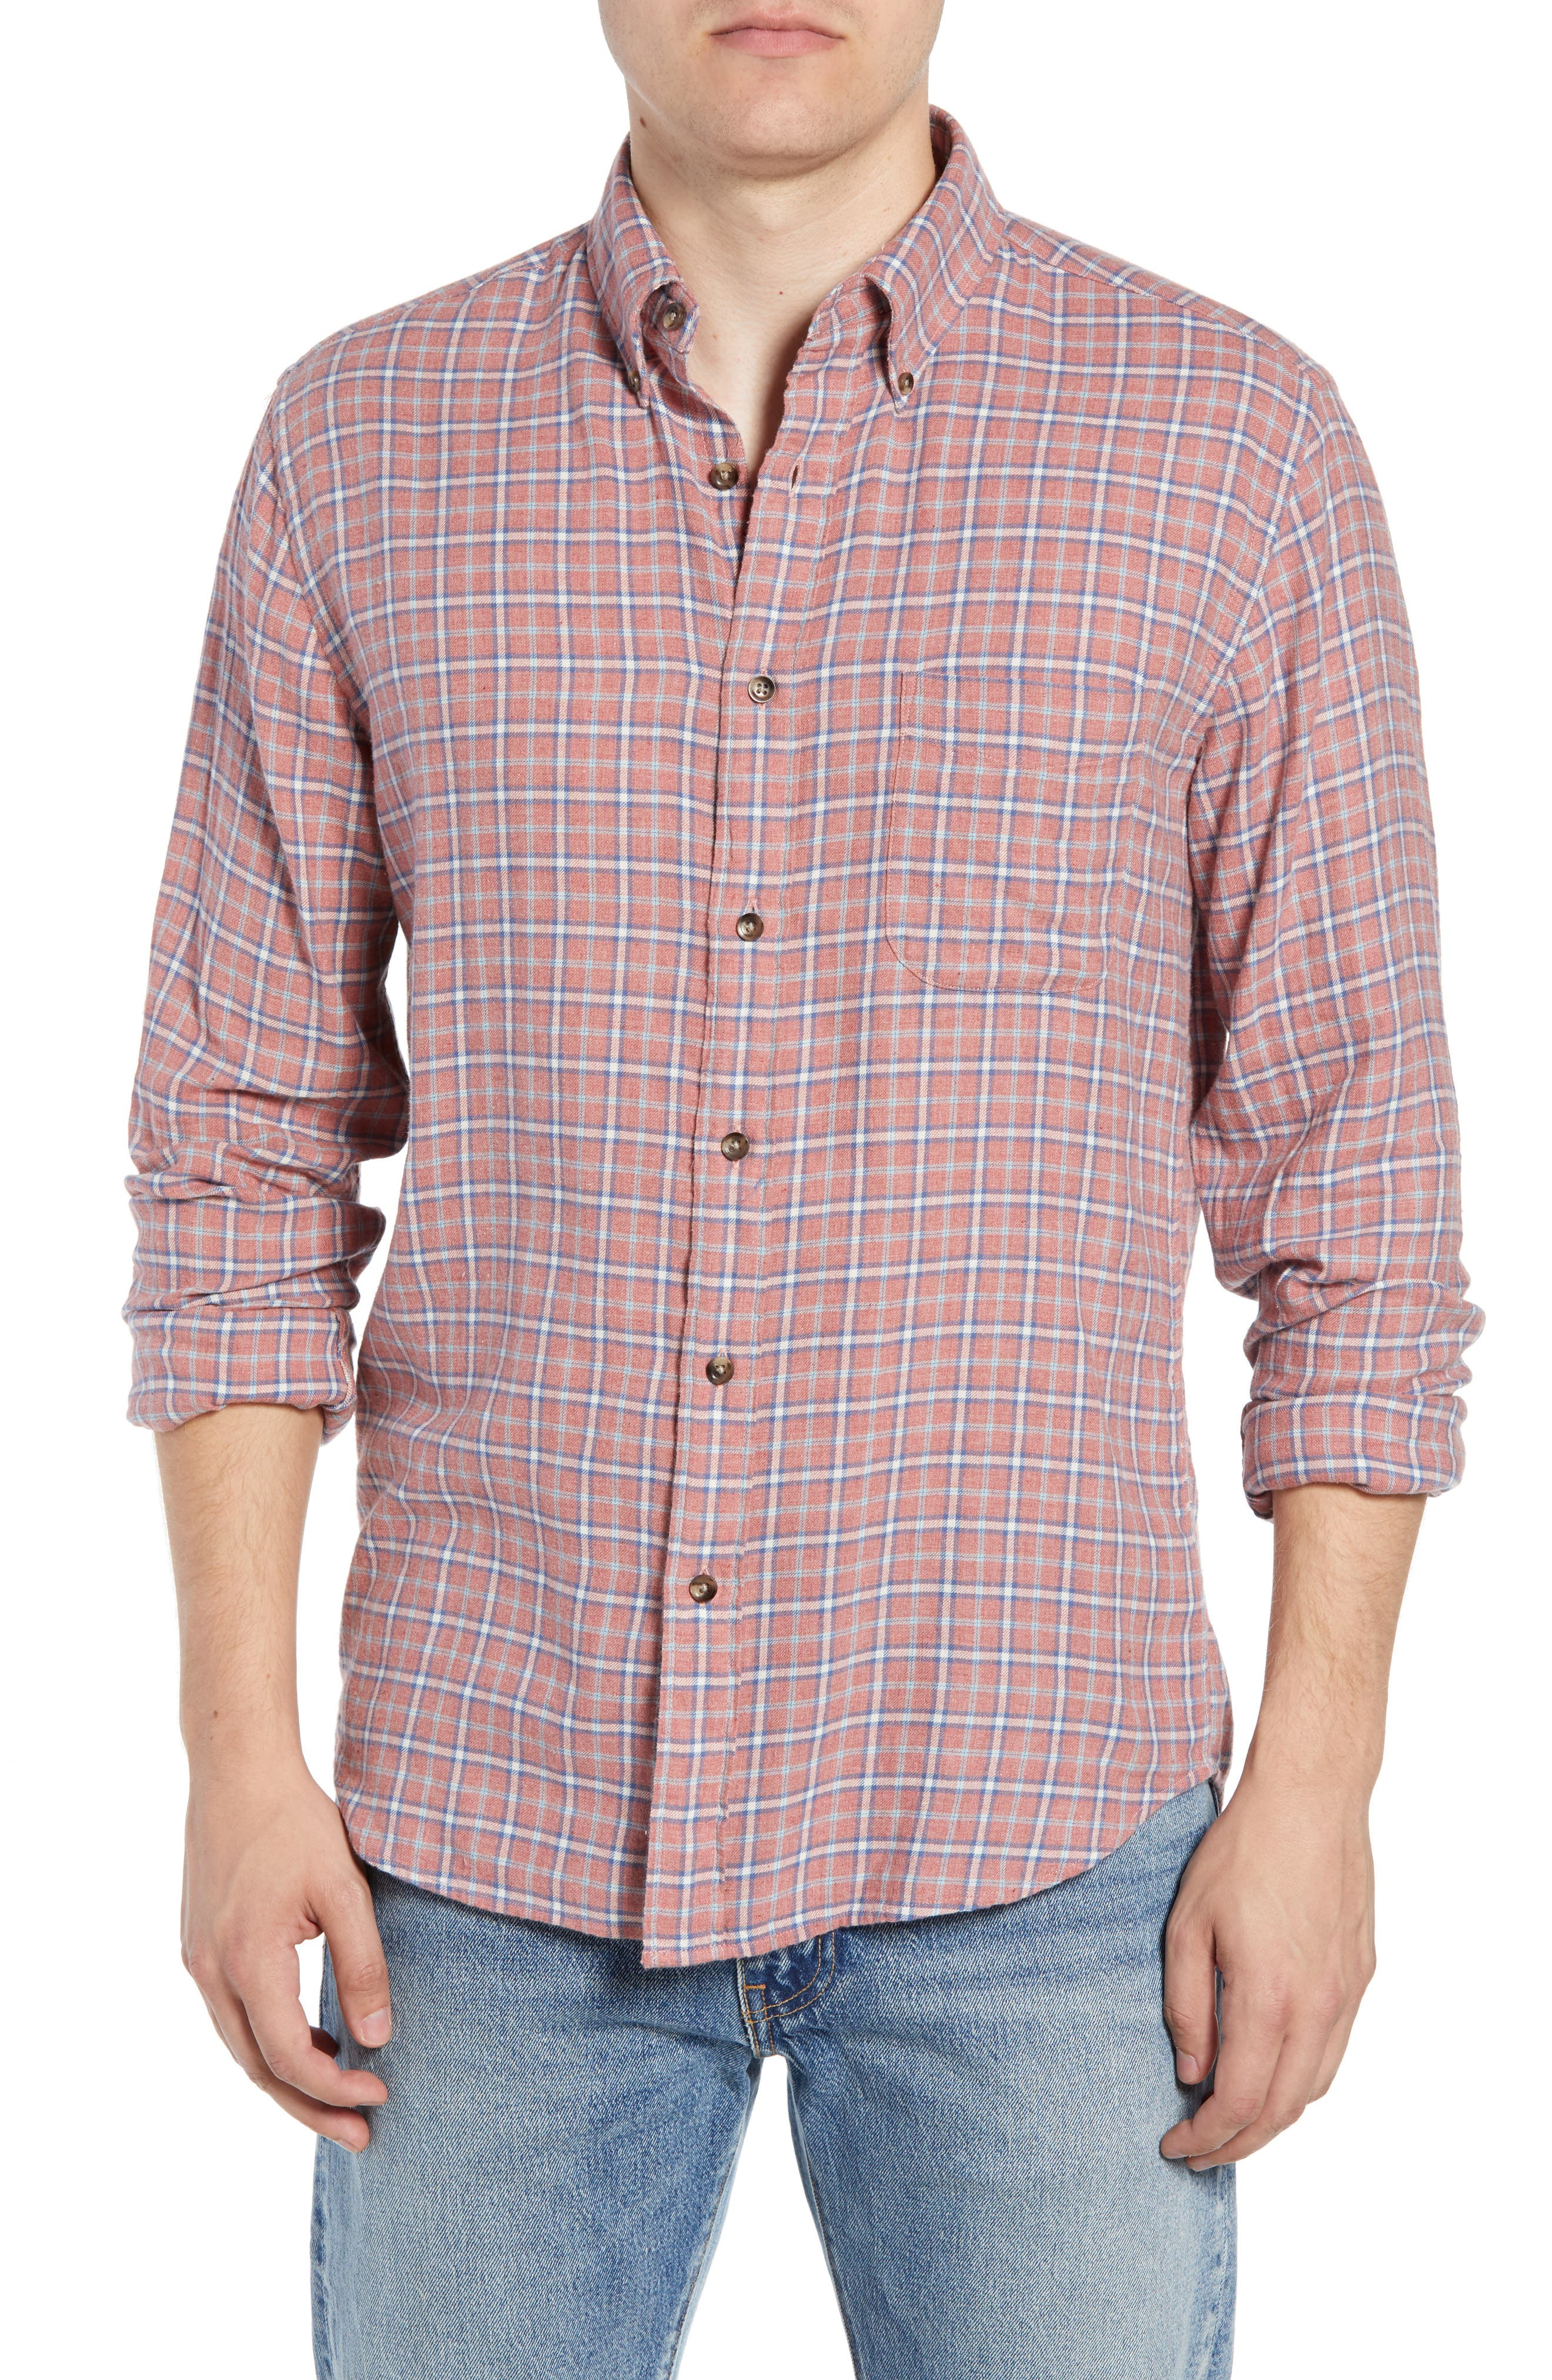 Pacific Check Organic Cotton Sport Shirt,                         Main,                         color, HEATHER RED MULTI